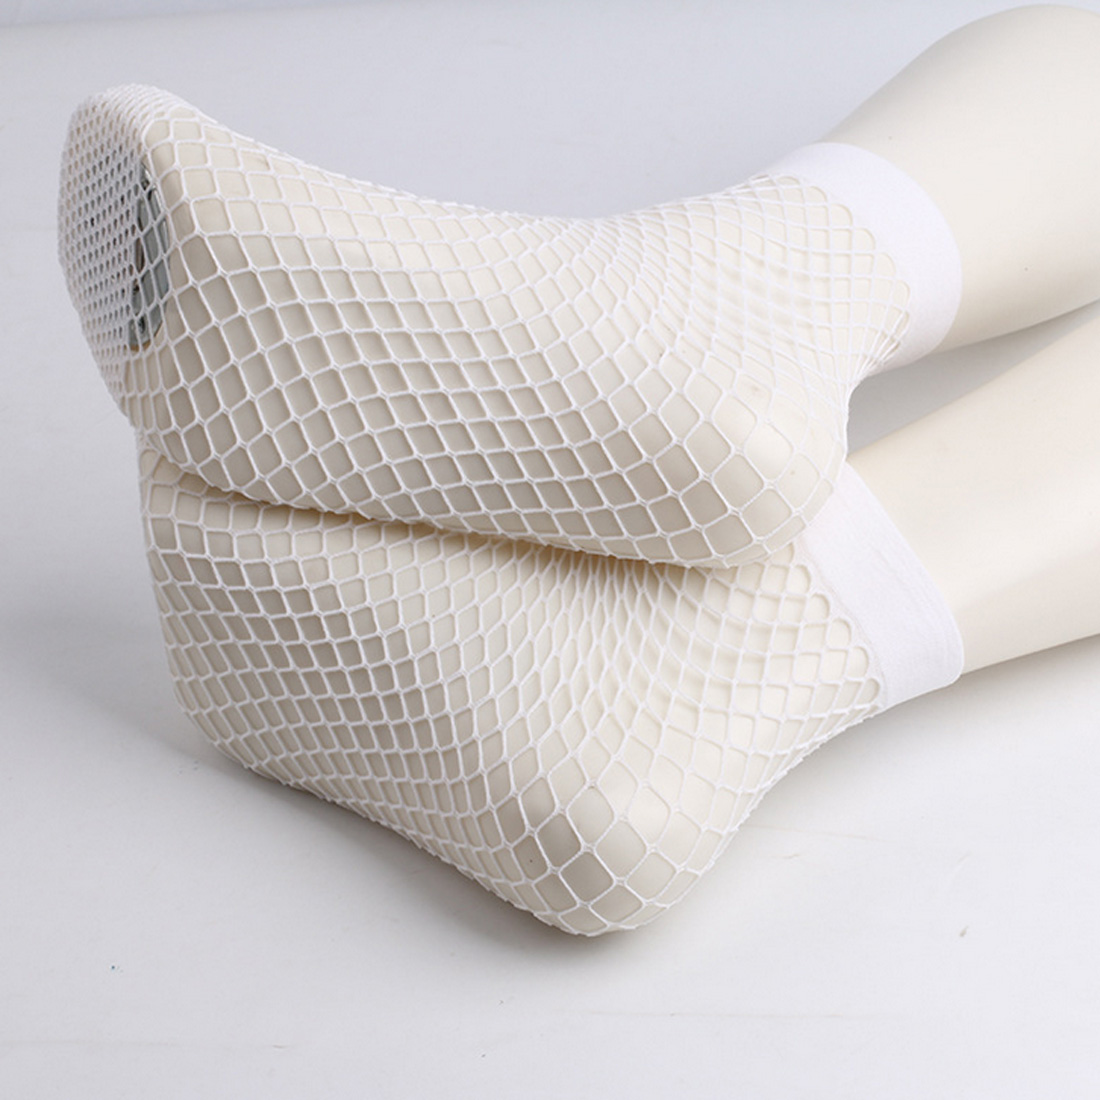 1 Pairs Sexy Mesh Socks Women Black Fishnet Ankle Socks Lace Short Nets Ladies Girls Breathable Stretchy Soft Female in Socks from Underwear Sleepwears